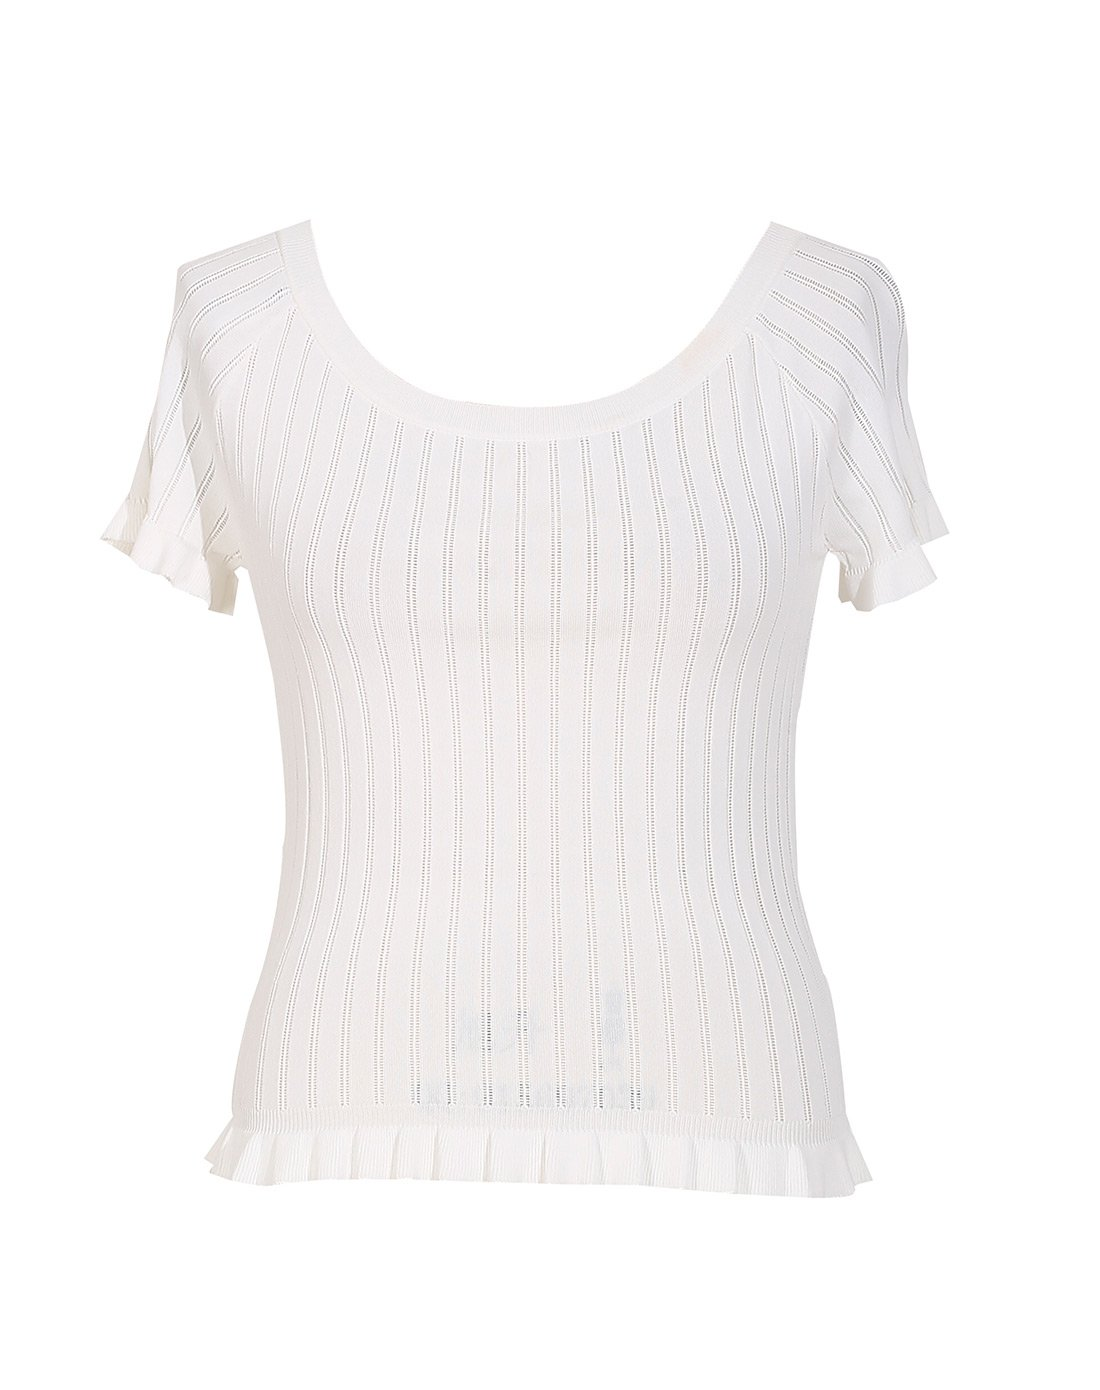 Comfy white short sleeve women tops trendy summer sweaters